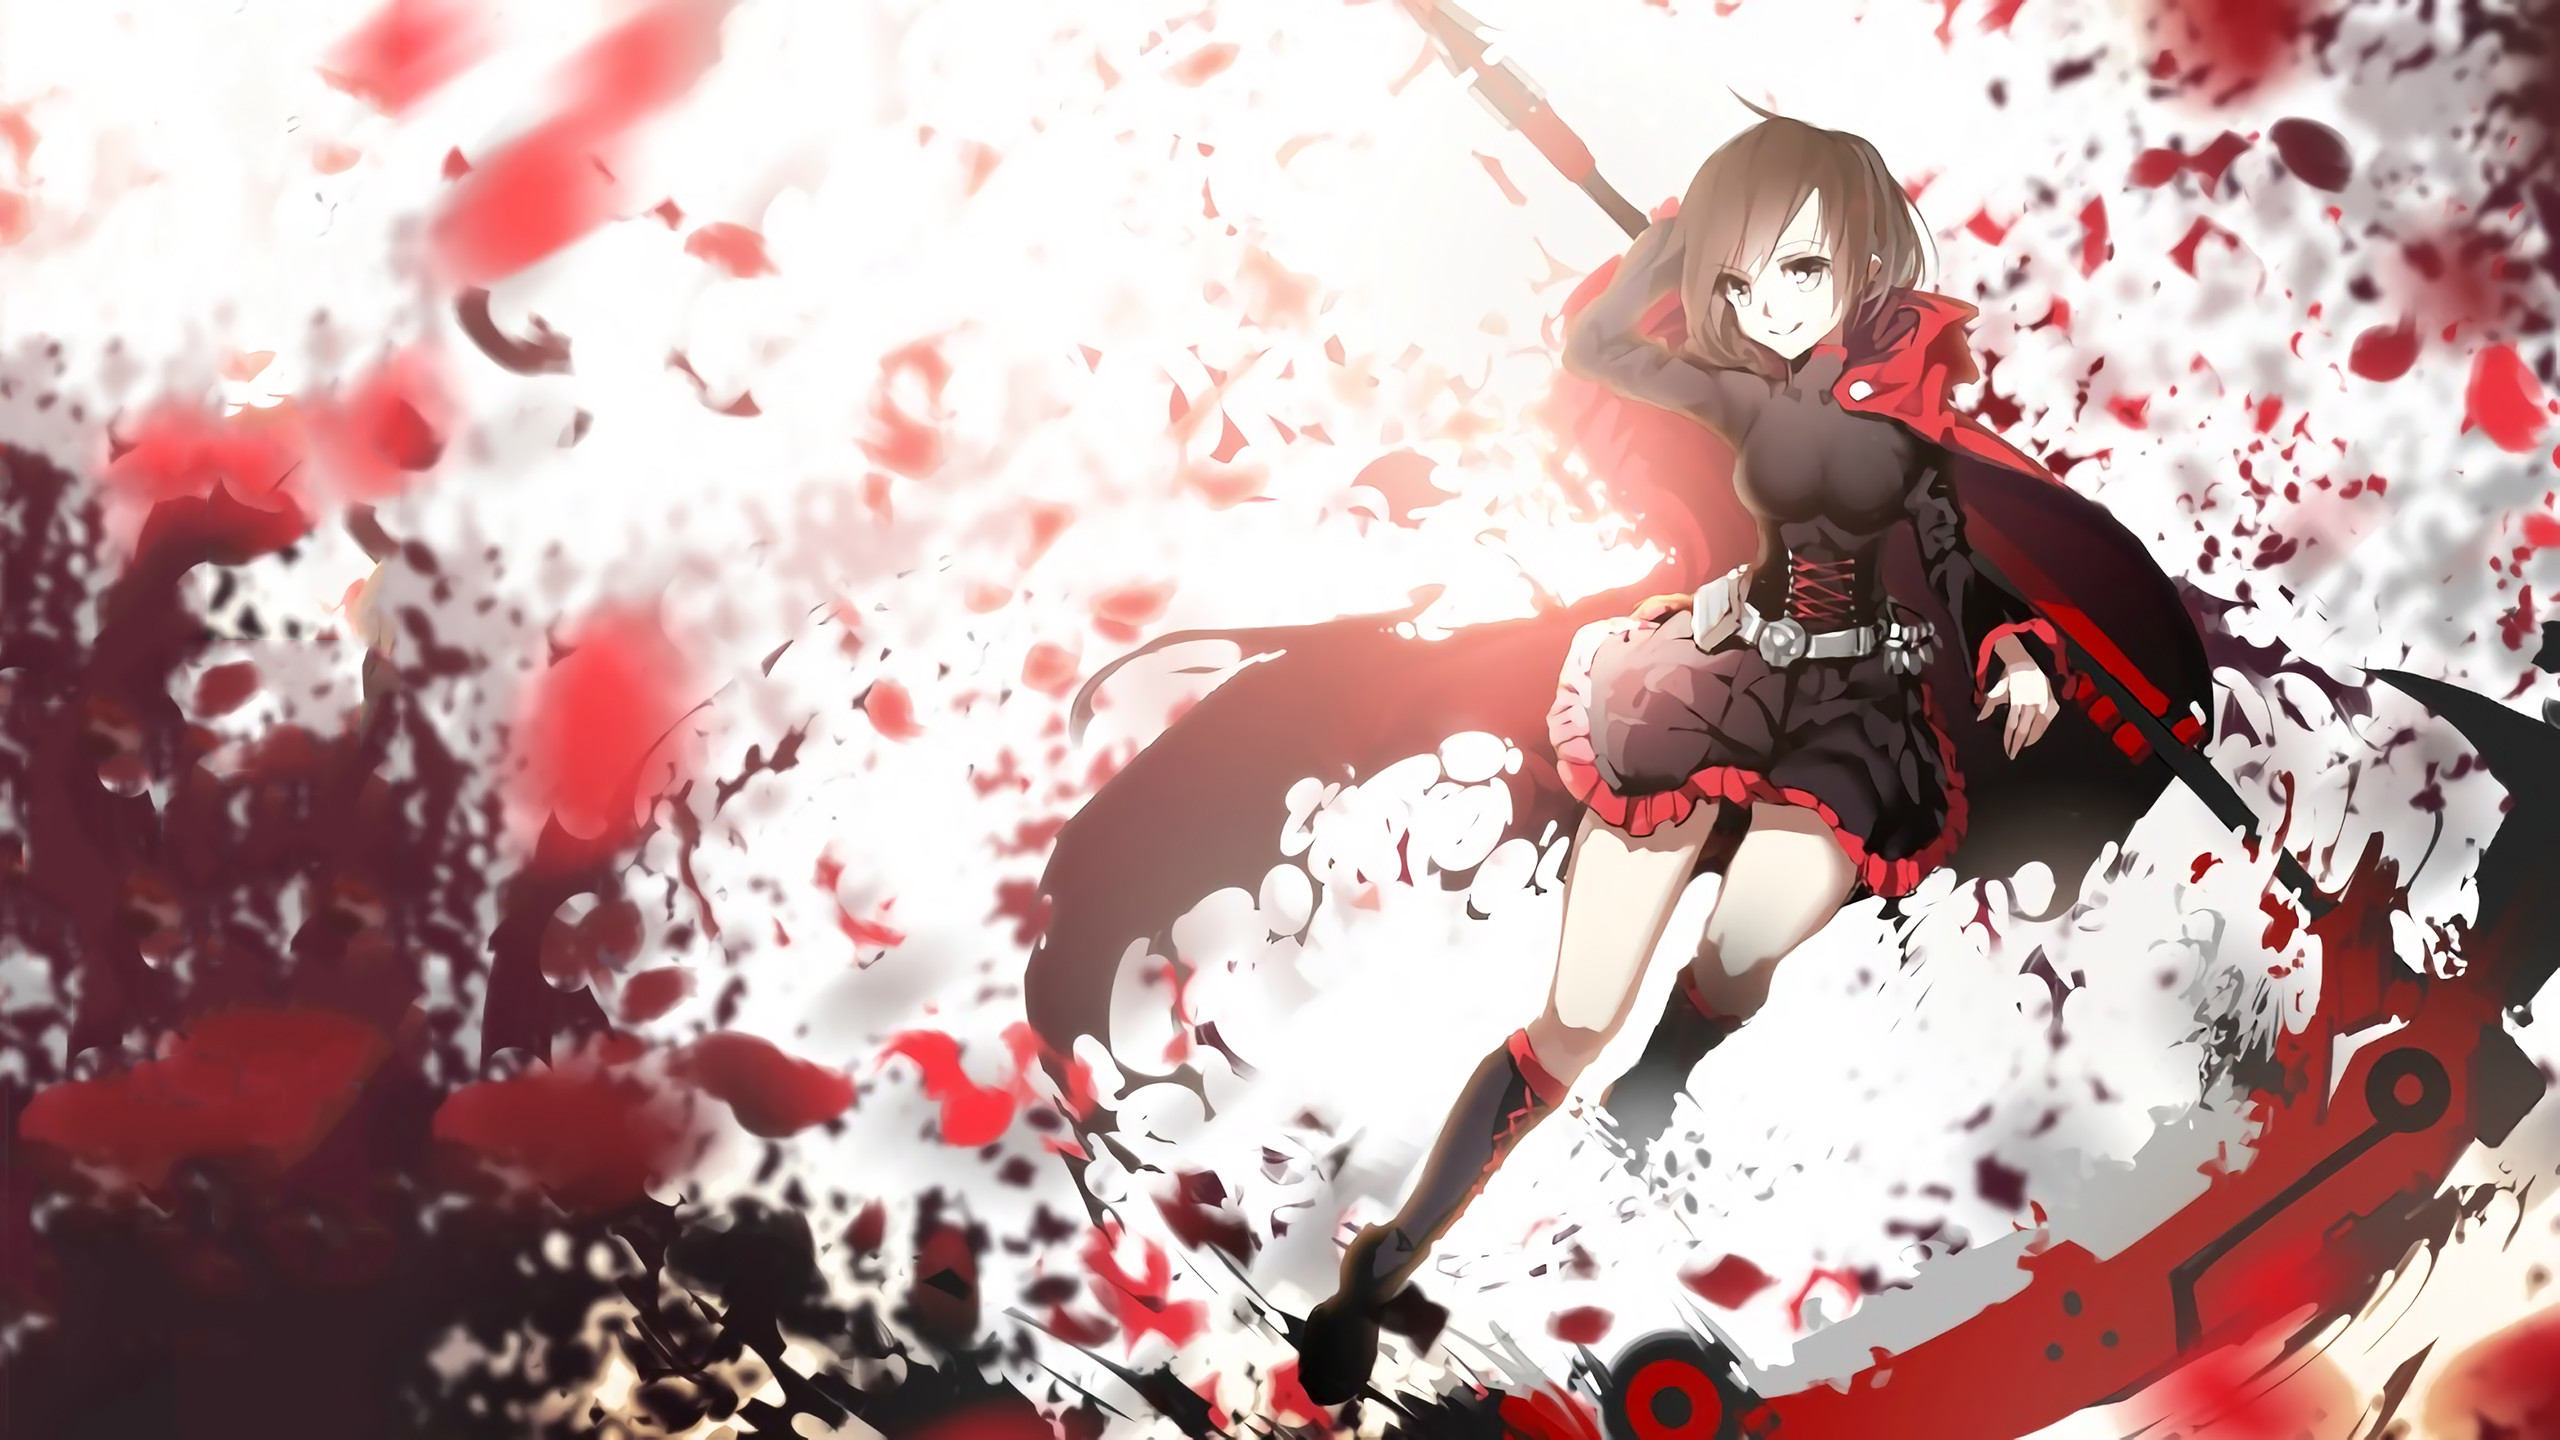 Res: 2560x1440, A collection of RWBY wallpapers